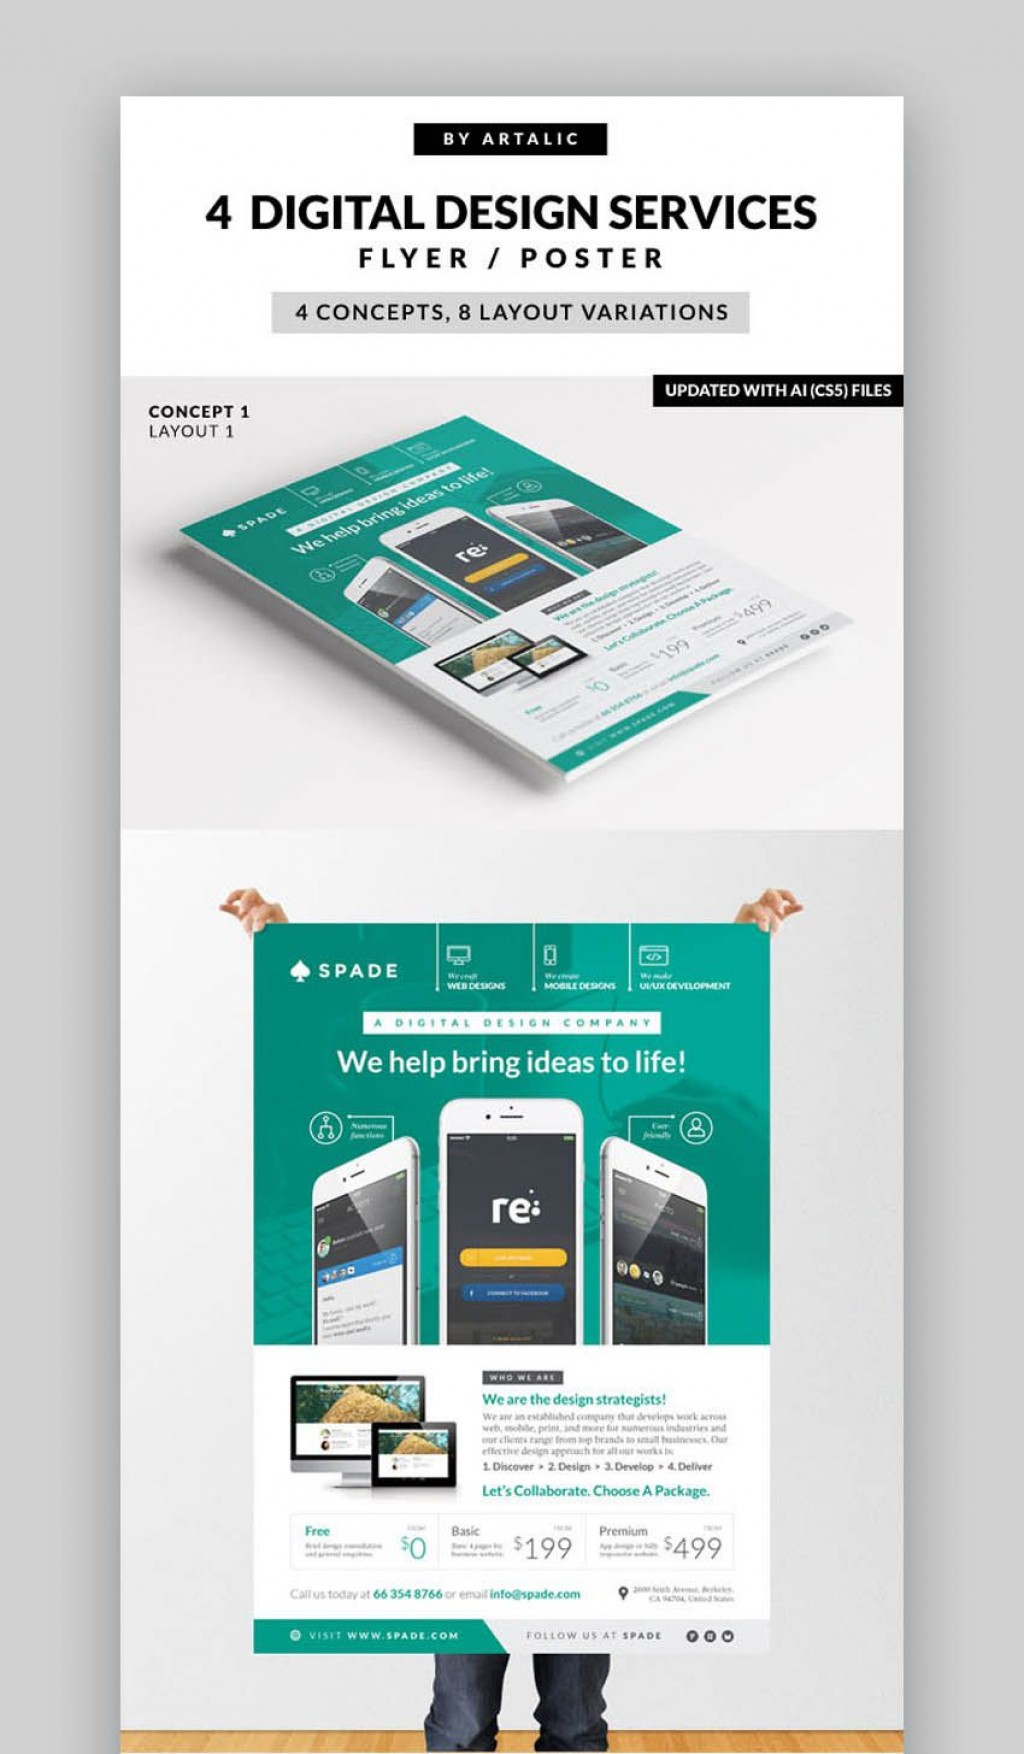 007 Magnificent In Design Flyer Template Highest Clarity  Templates Indesign Free For Mac EventLarge